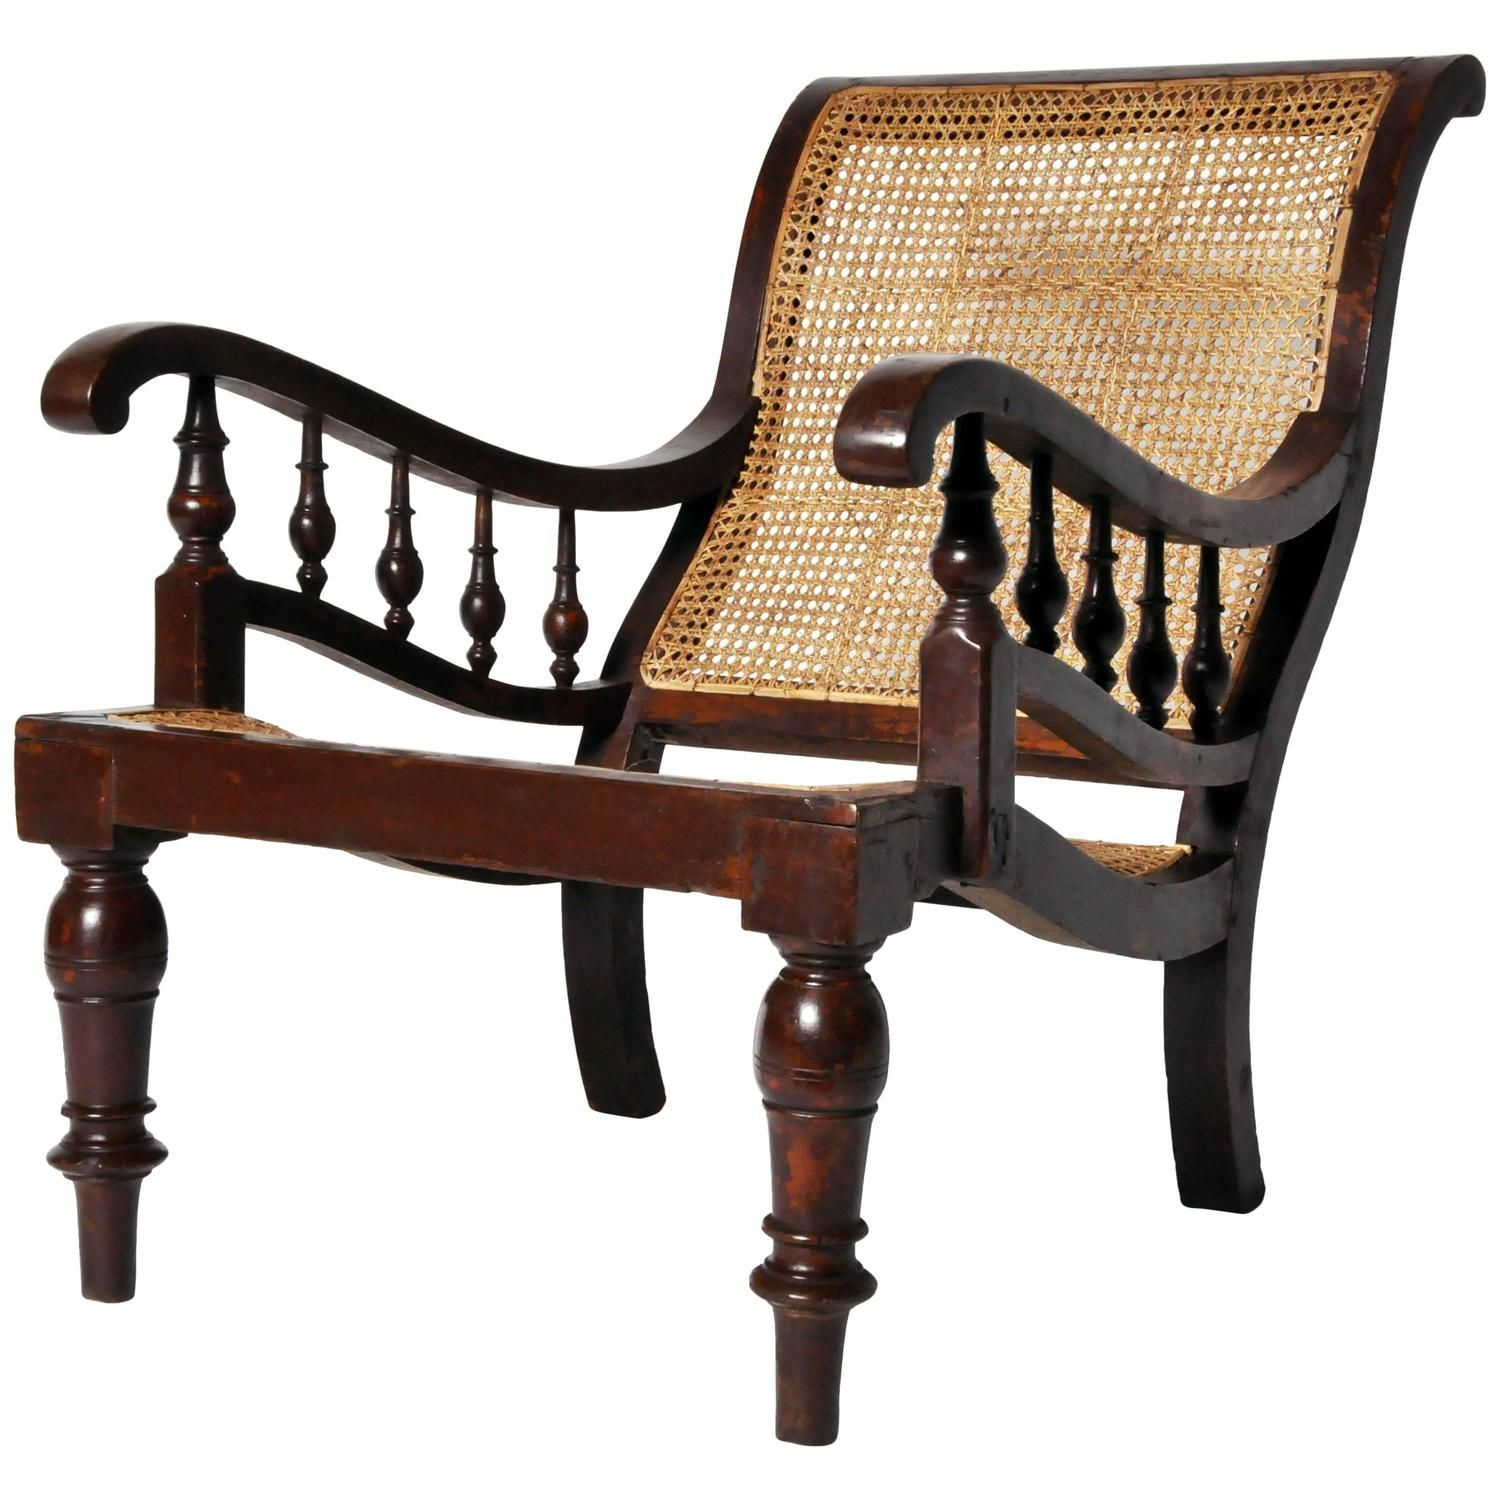 Private residence in british colonial style traditional bathroom - British Colonial Planter S Chair Bahamas Housebritish Colonial Stylechairs